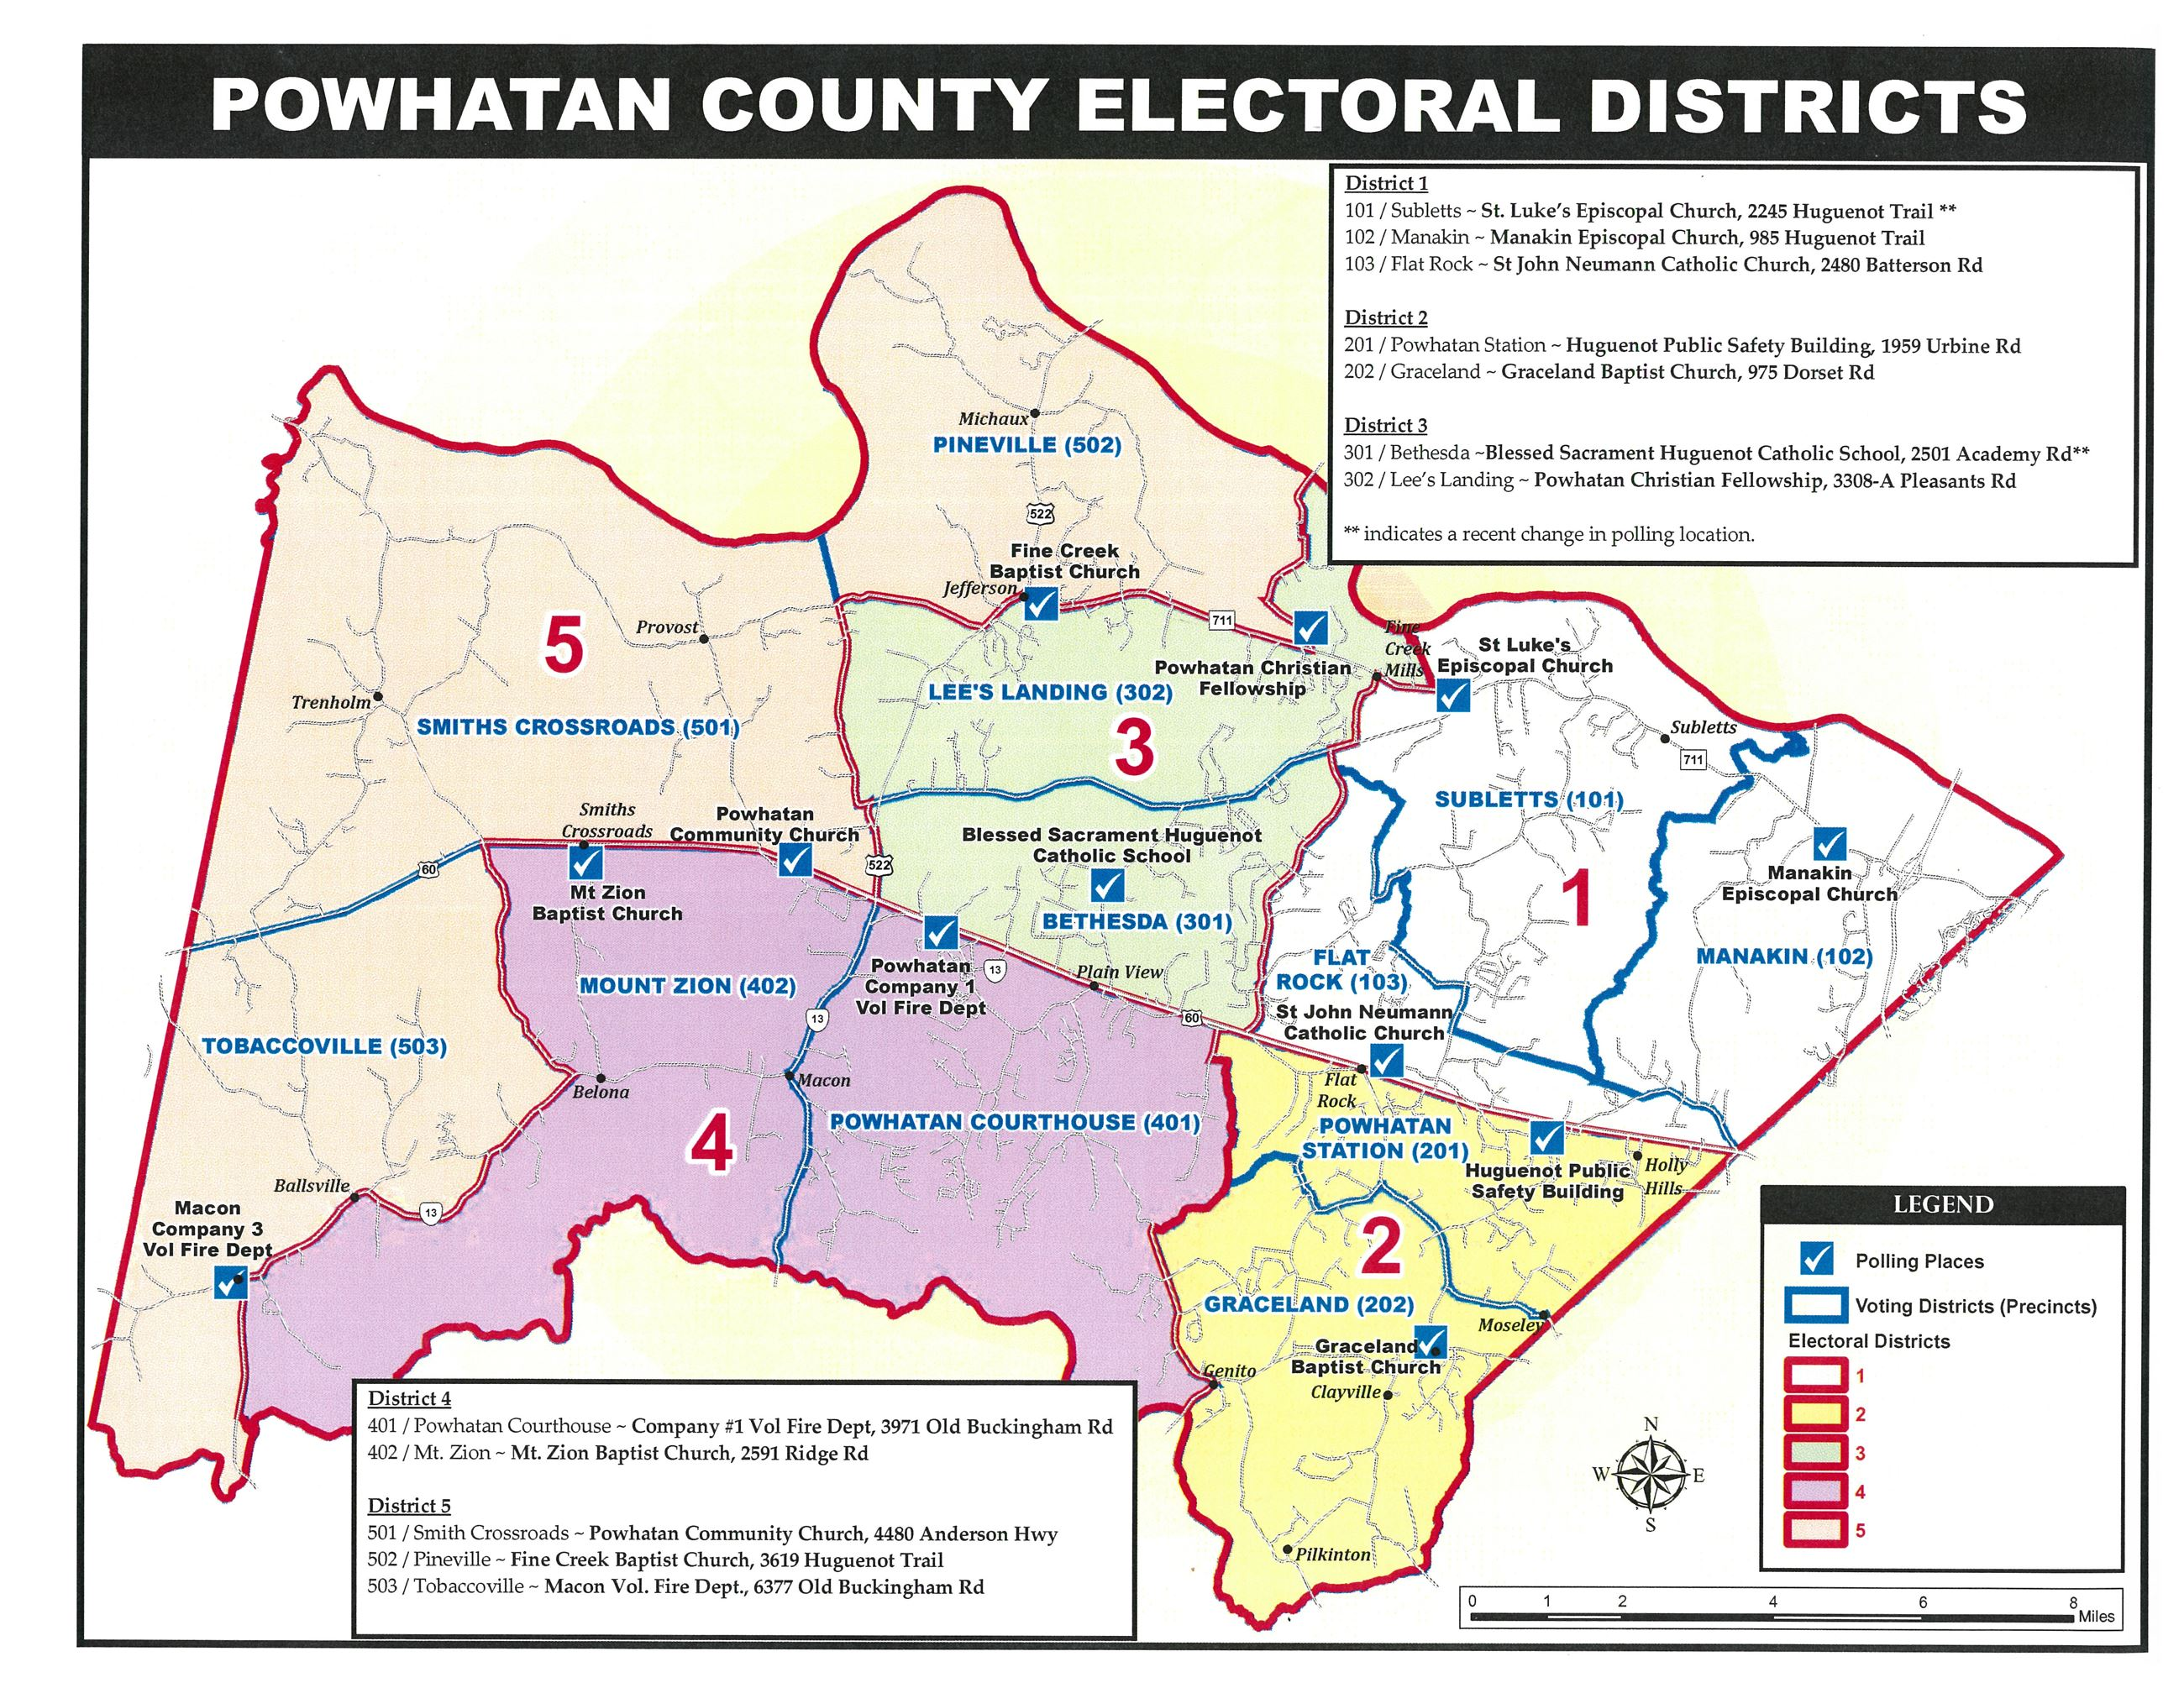 Powhatan County Electoral District Map